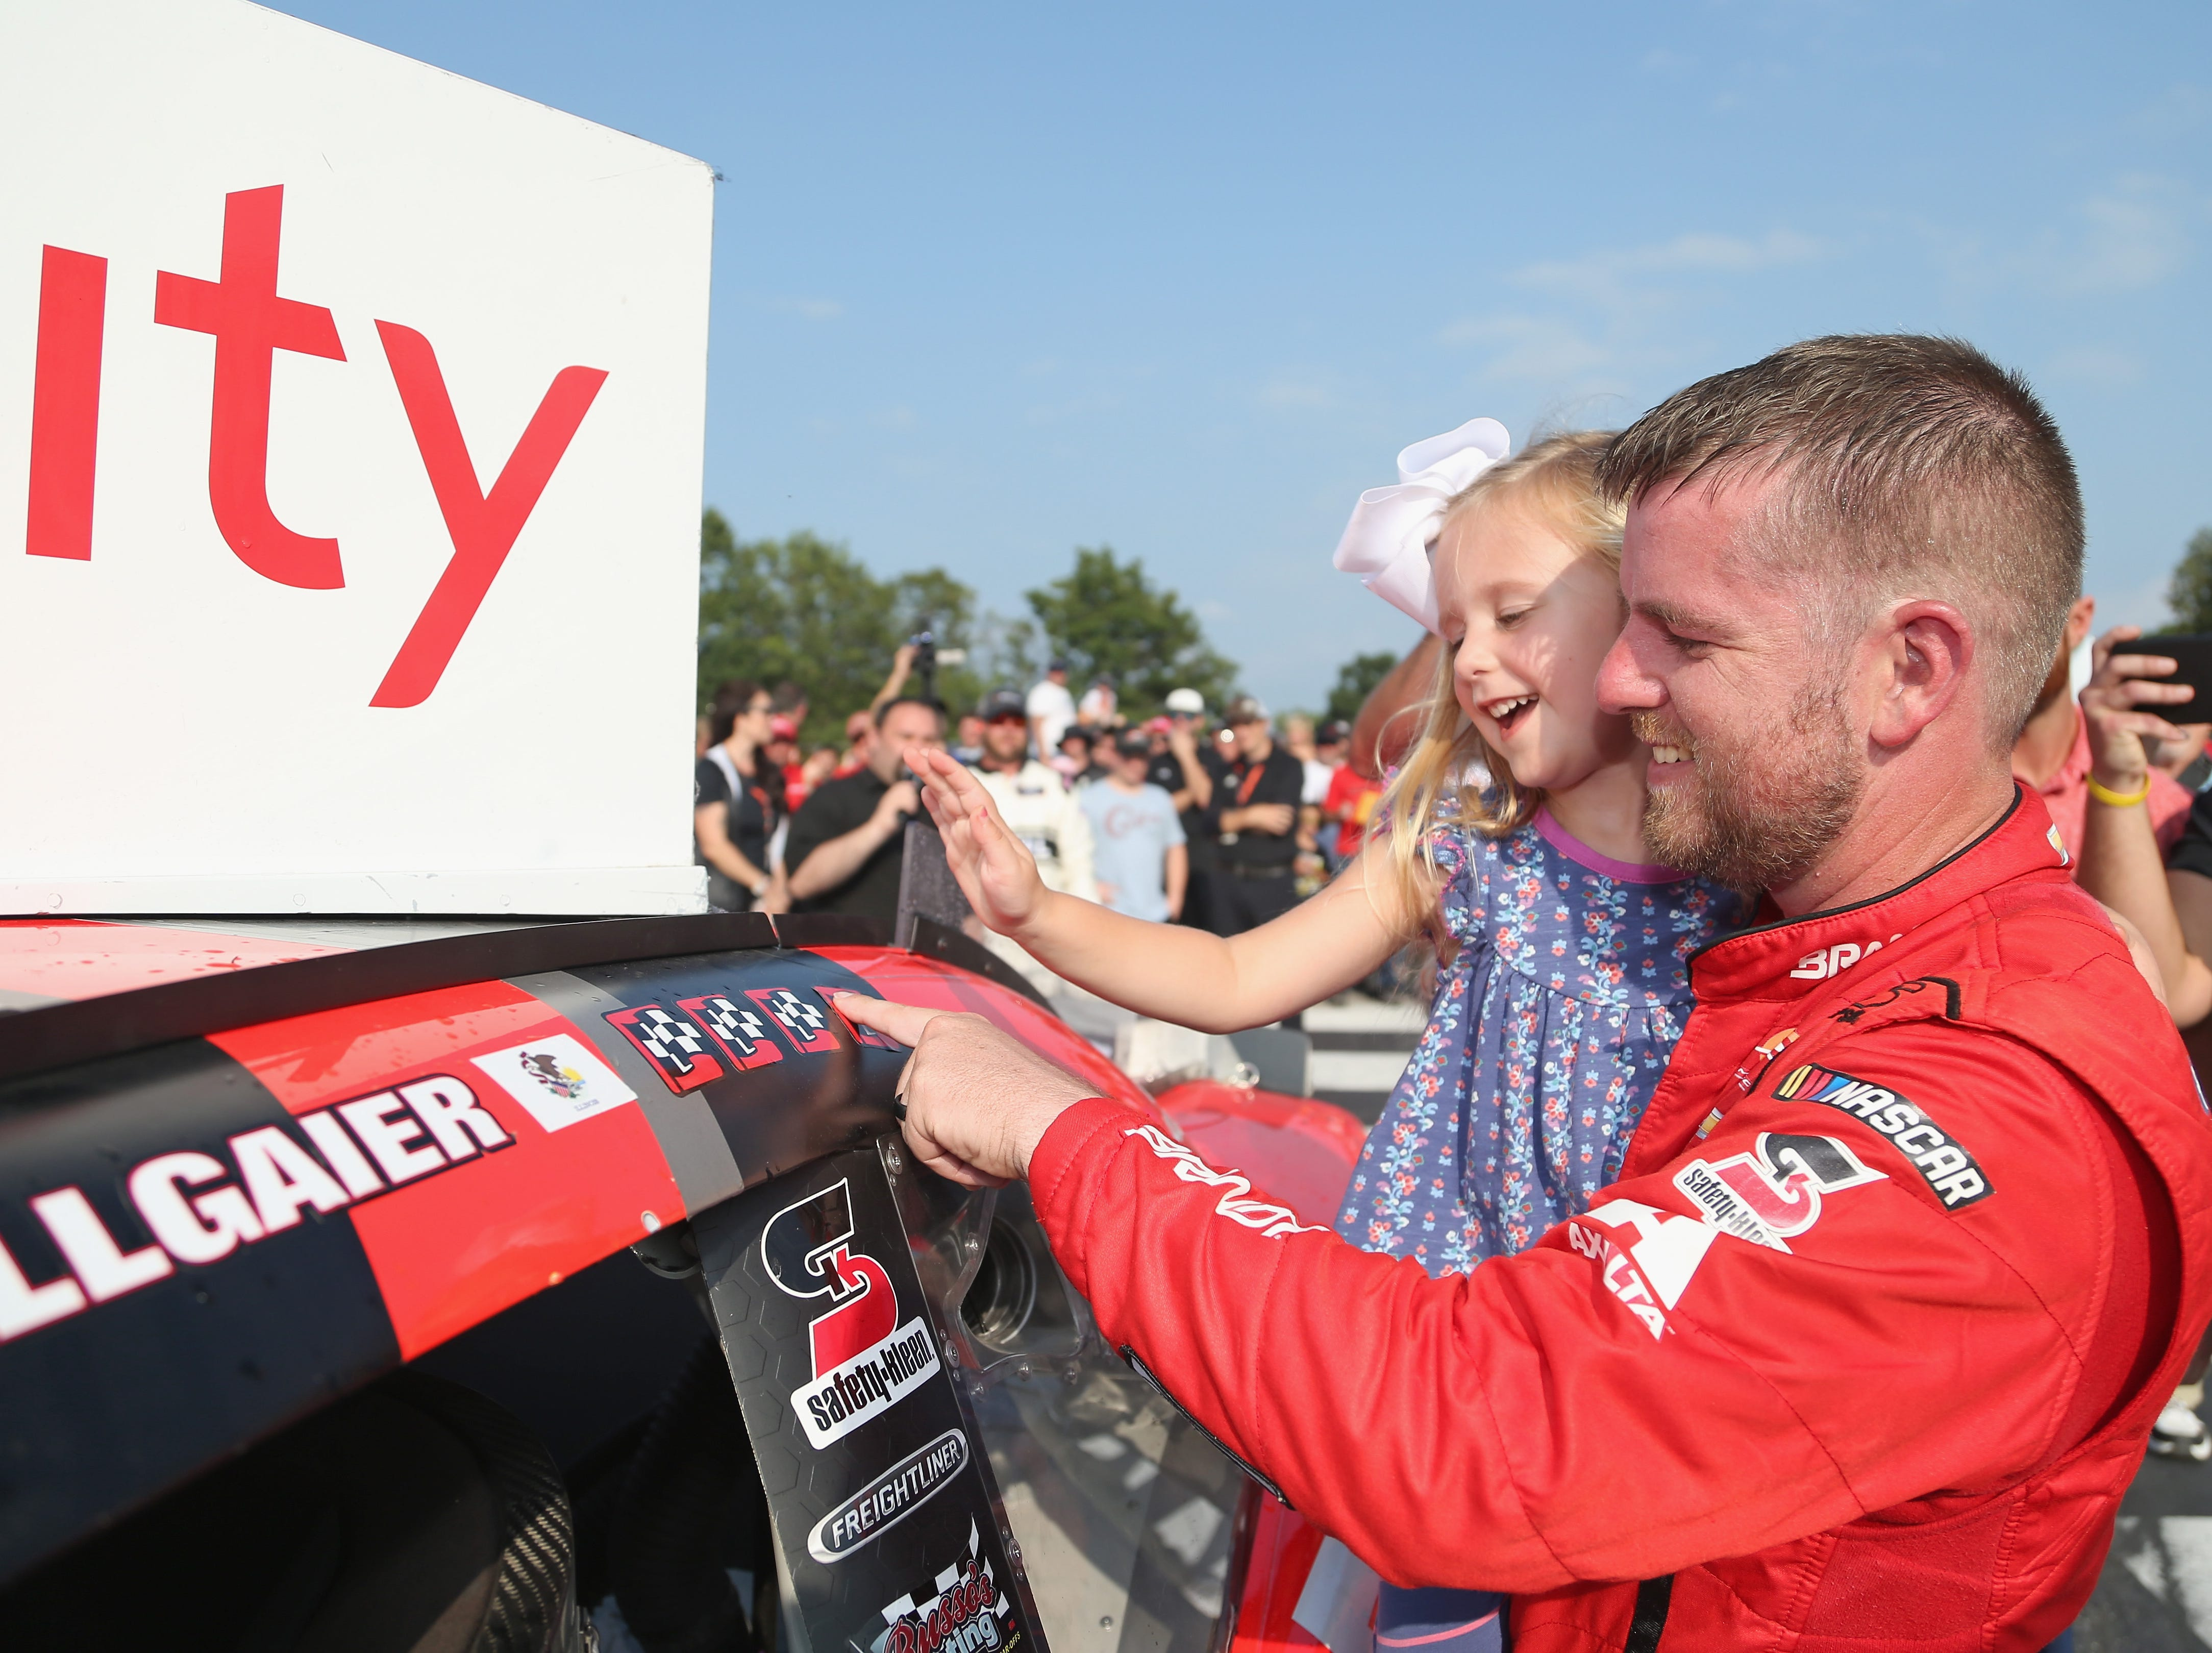 ELKHART LAKE, WI - AUGUST 25:  Justin Allgaier, driver of the #7 BRANDT Professional Agriculture Chevrolet, applies with winner's sticker with his daughter, Harper, after winning the NASCAR Xfinity Series Johnsonville 180 at Road America on August 24, 2018 in Elkhart Lake, Wisconsin.  (Photo by Matt Sullivan/Getty Images)